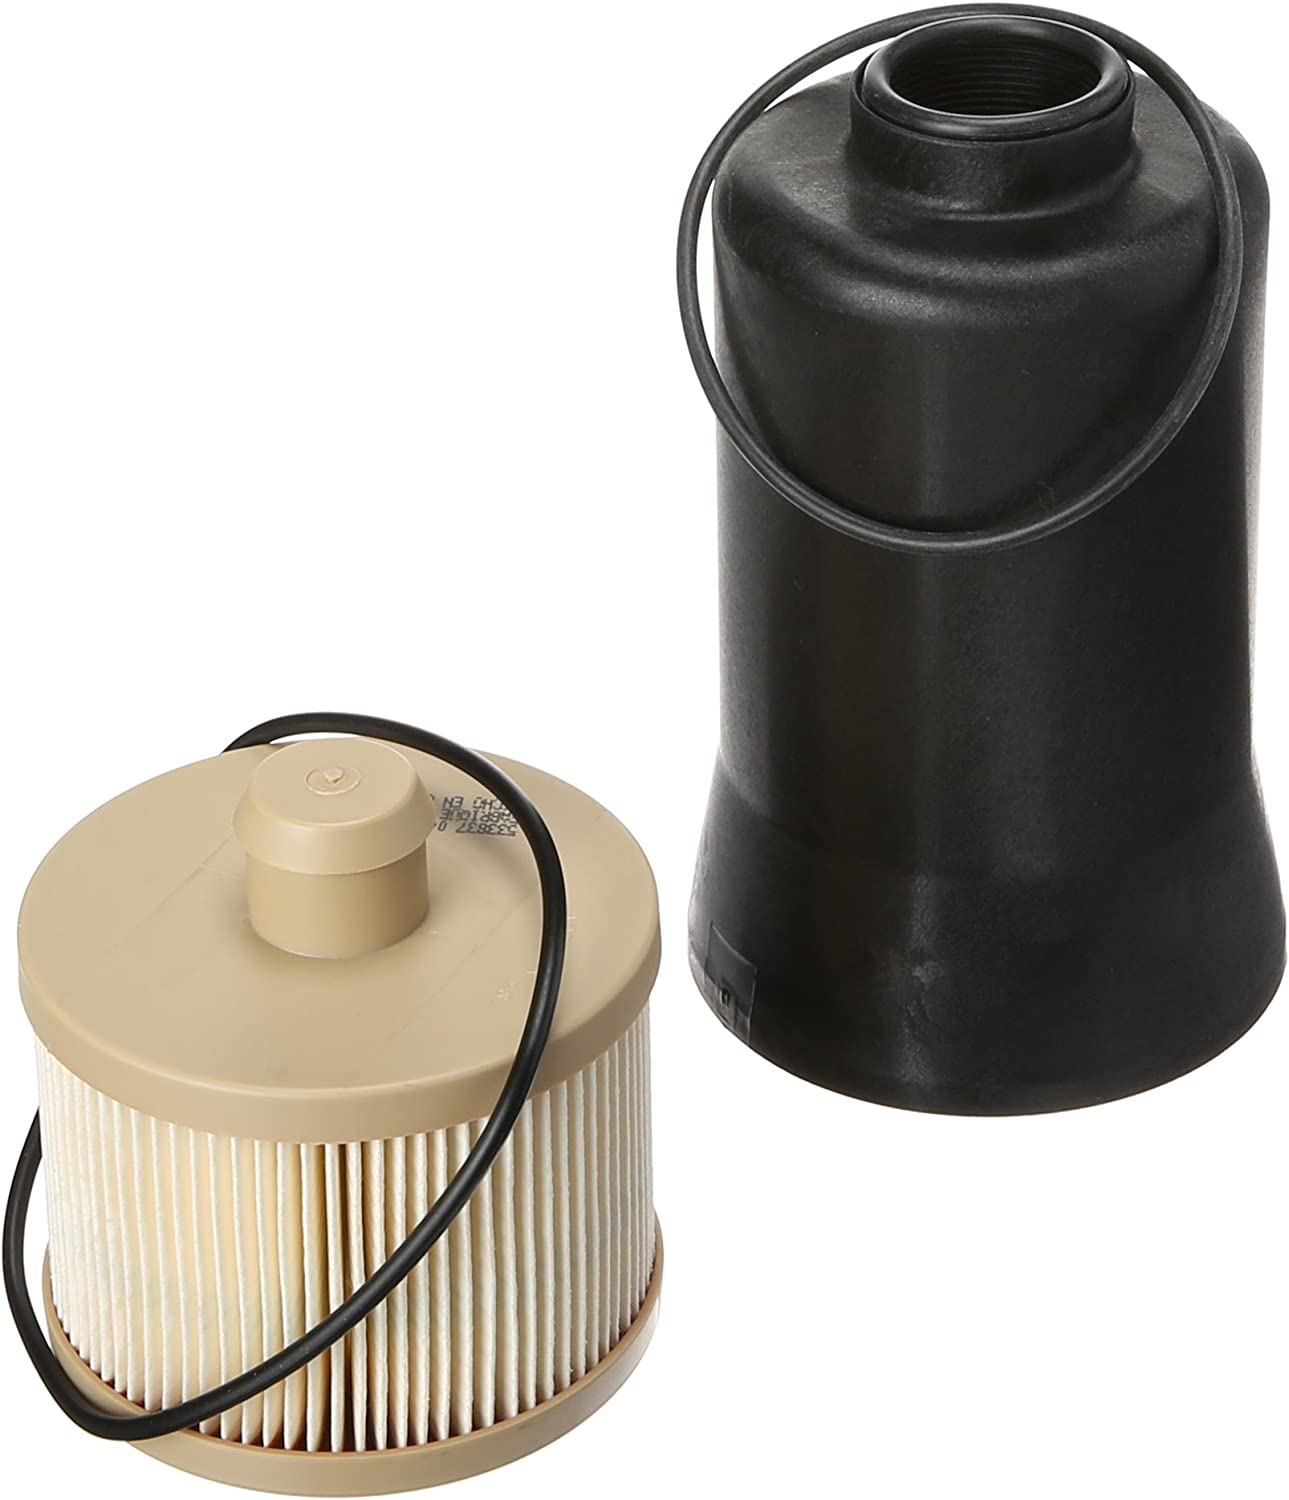 33349 Heavy Duty Cartridge Fuel Metal Free Pack of 1 WIX Filters